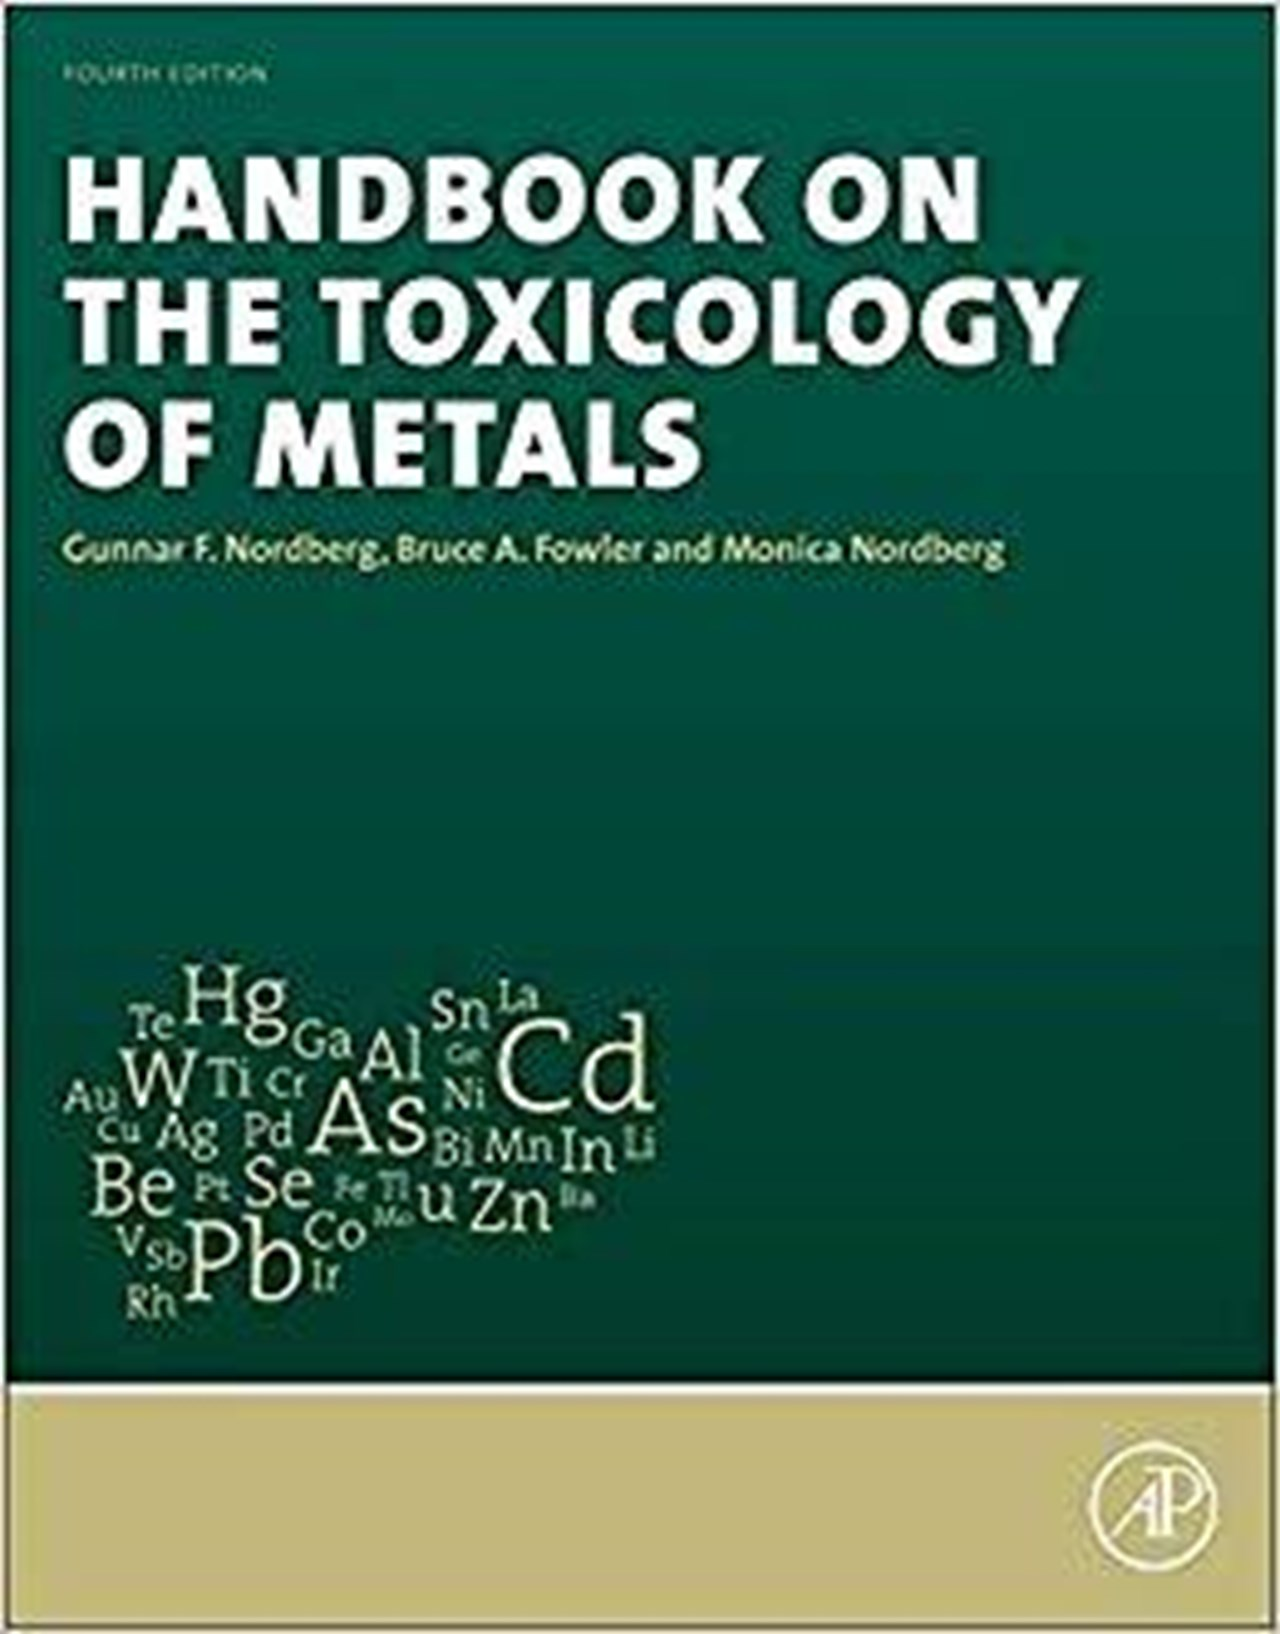 Handbook on the toxicology of metals